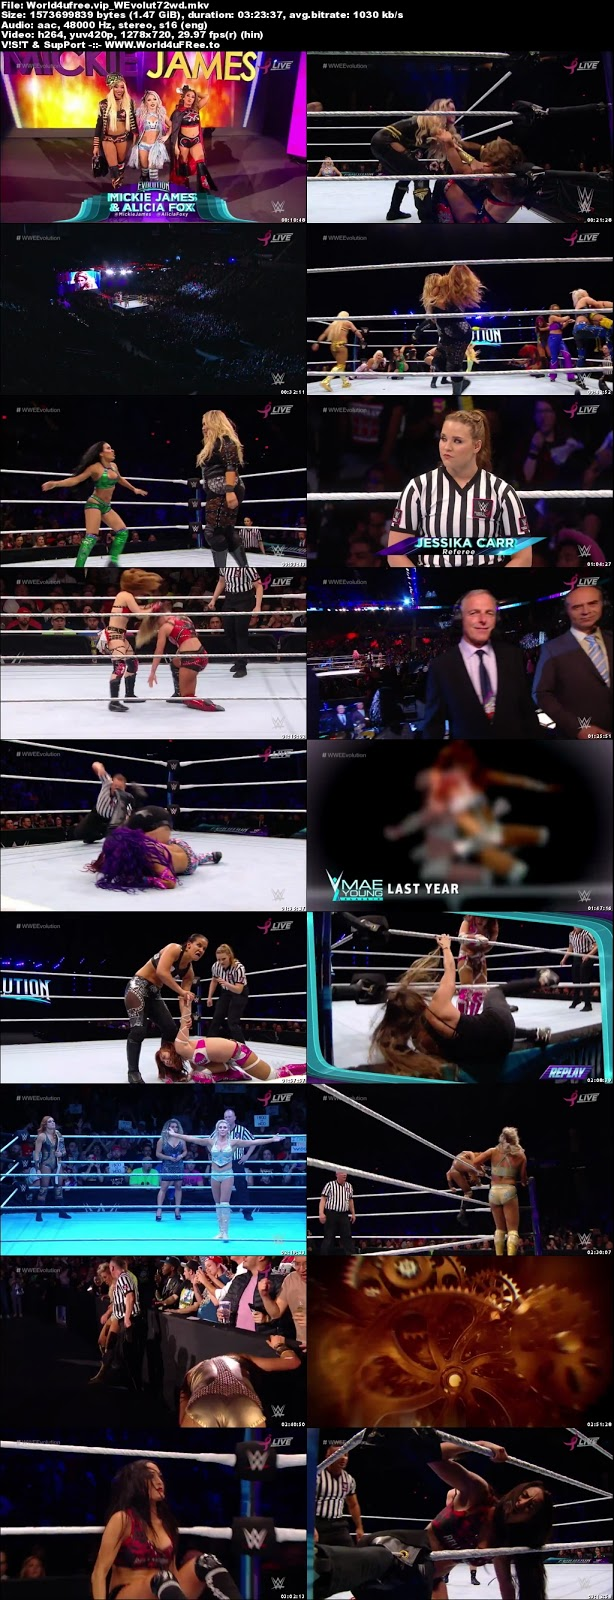 Wwe Evolution 2018 PPV 720p WEBRip 1.5Gb x264 tv show Wwe Evolution 2018 PPV 800mb 720p compressed small size free download or watch online at world4ufree.fun